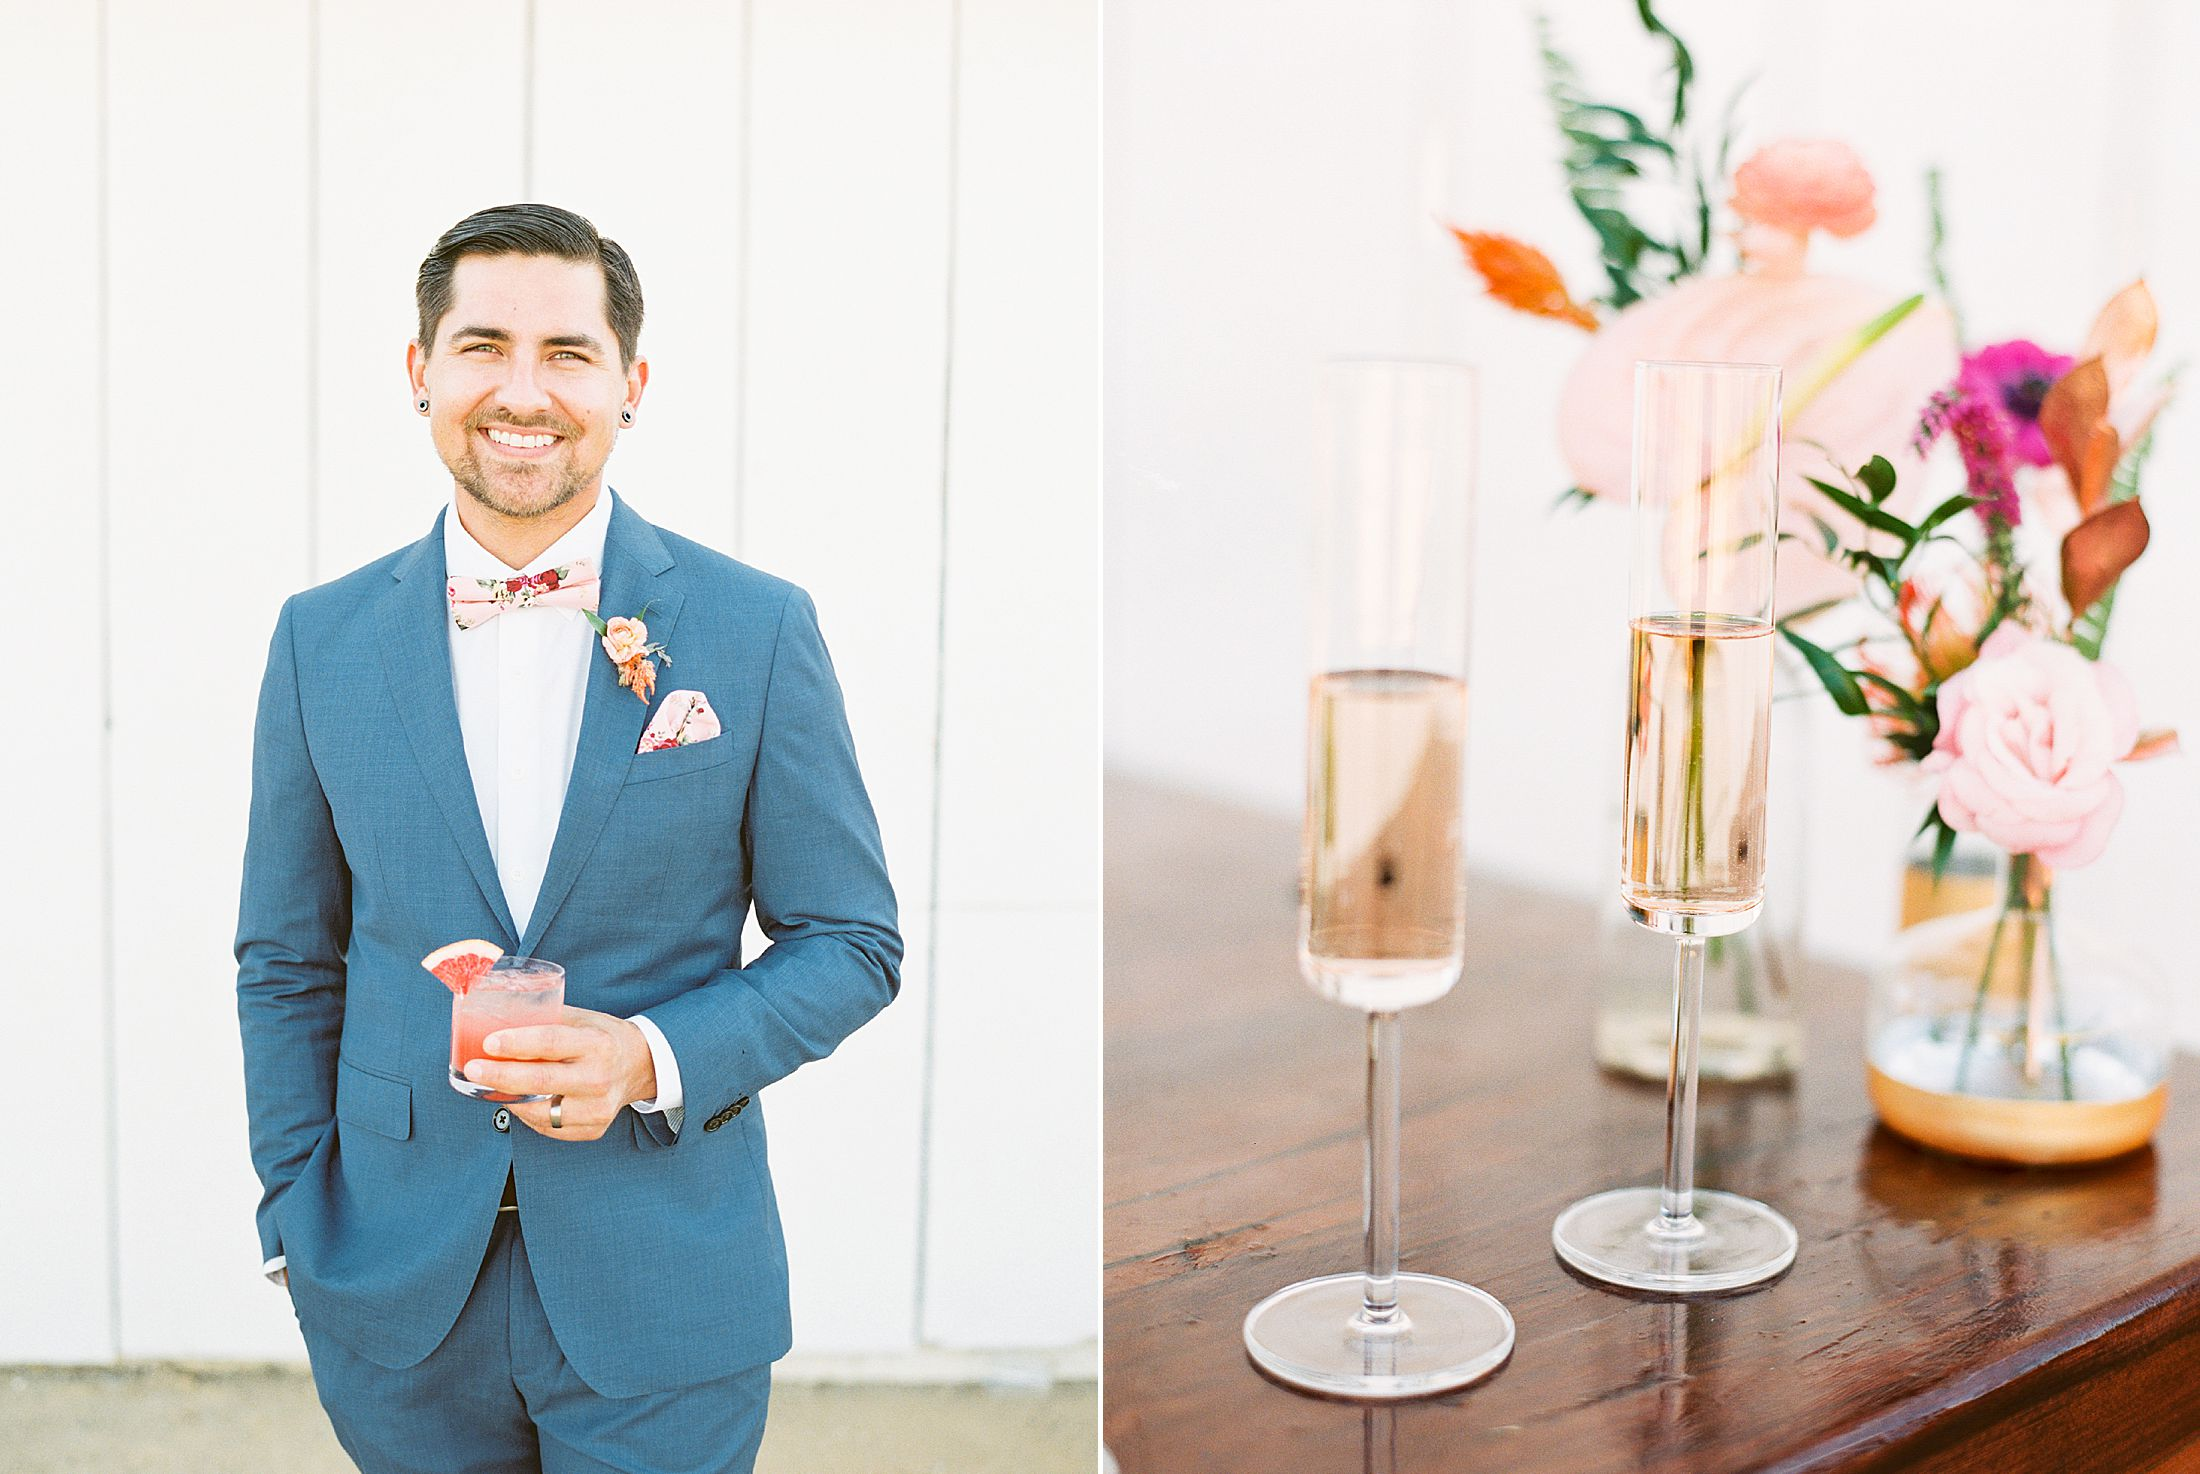 White Barn Edna Valley Wedding Inspiration - San Luis Obispo Wedding - Featured on Green Wedding Shoes - Ashley Baumgartner - FM Events SLO - SLO Wedding Photographer_0069.jpg